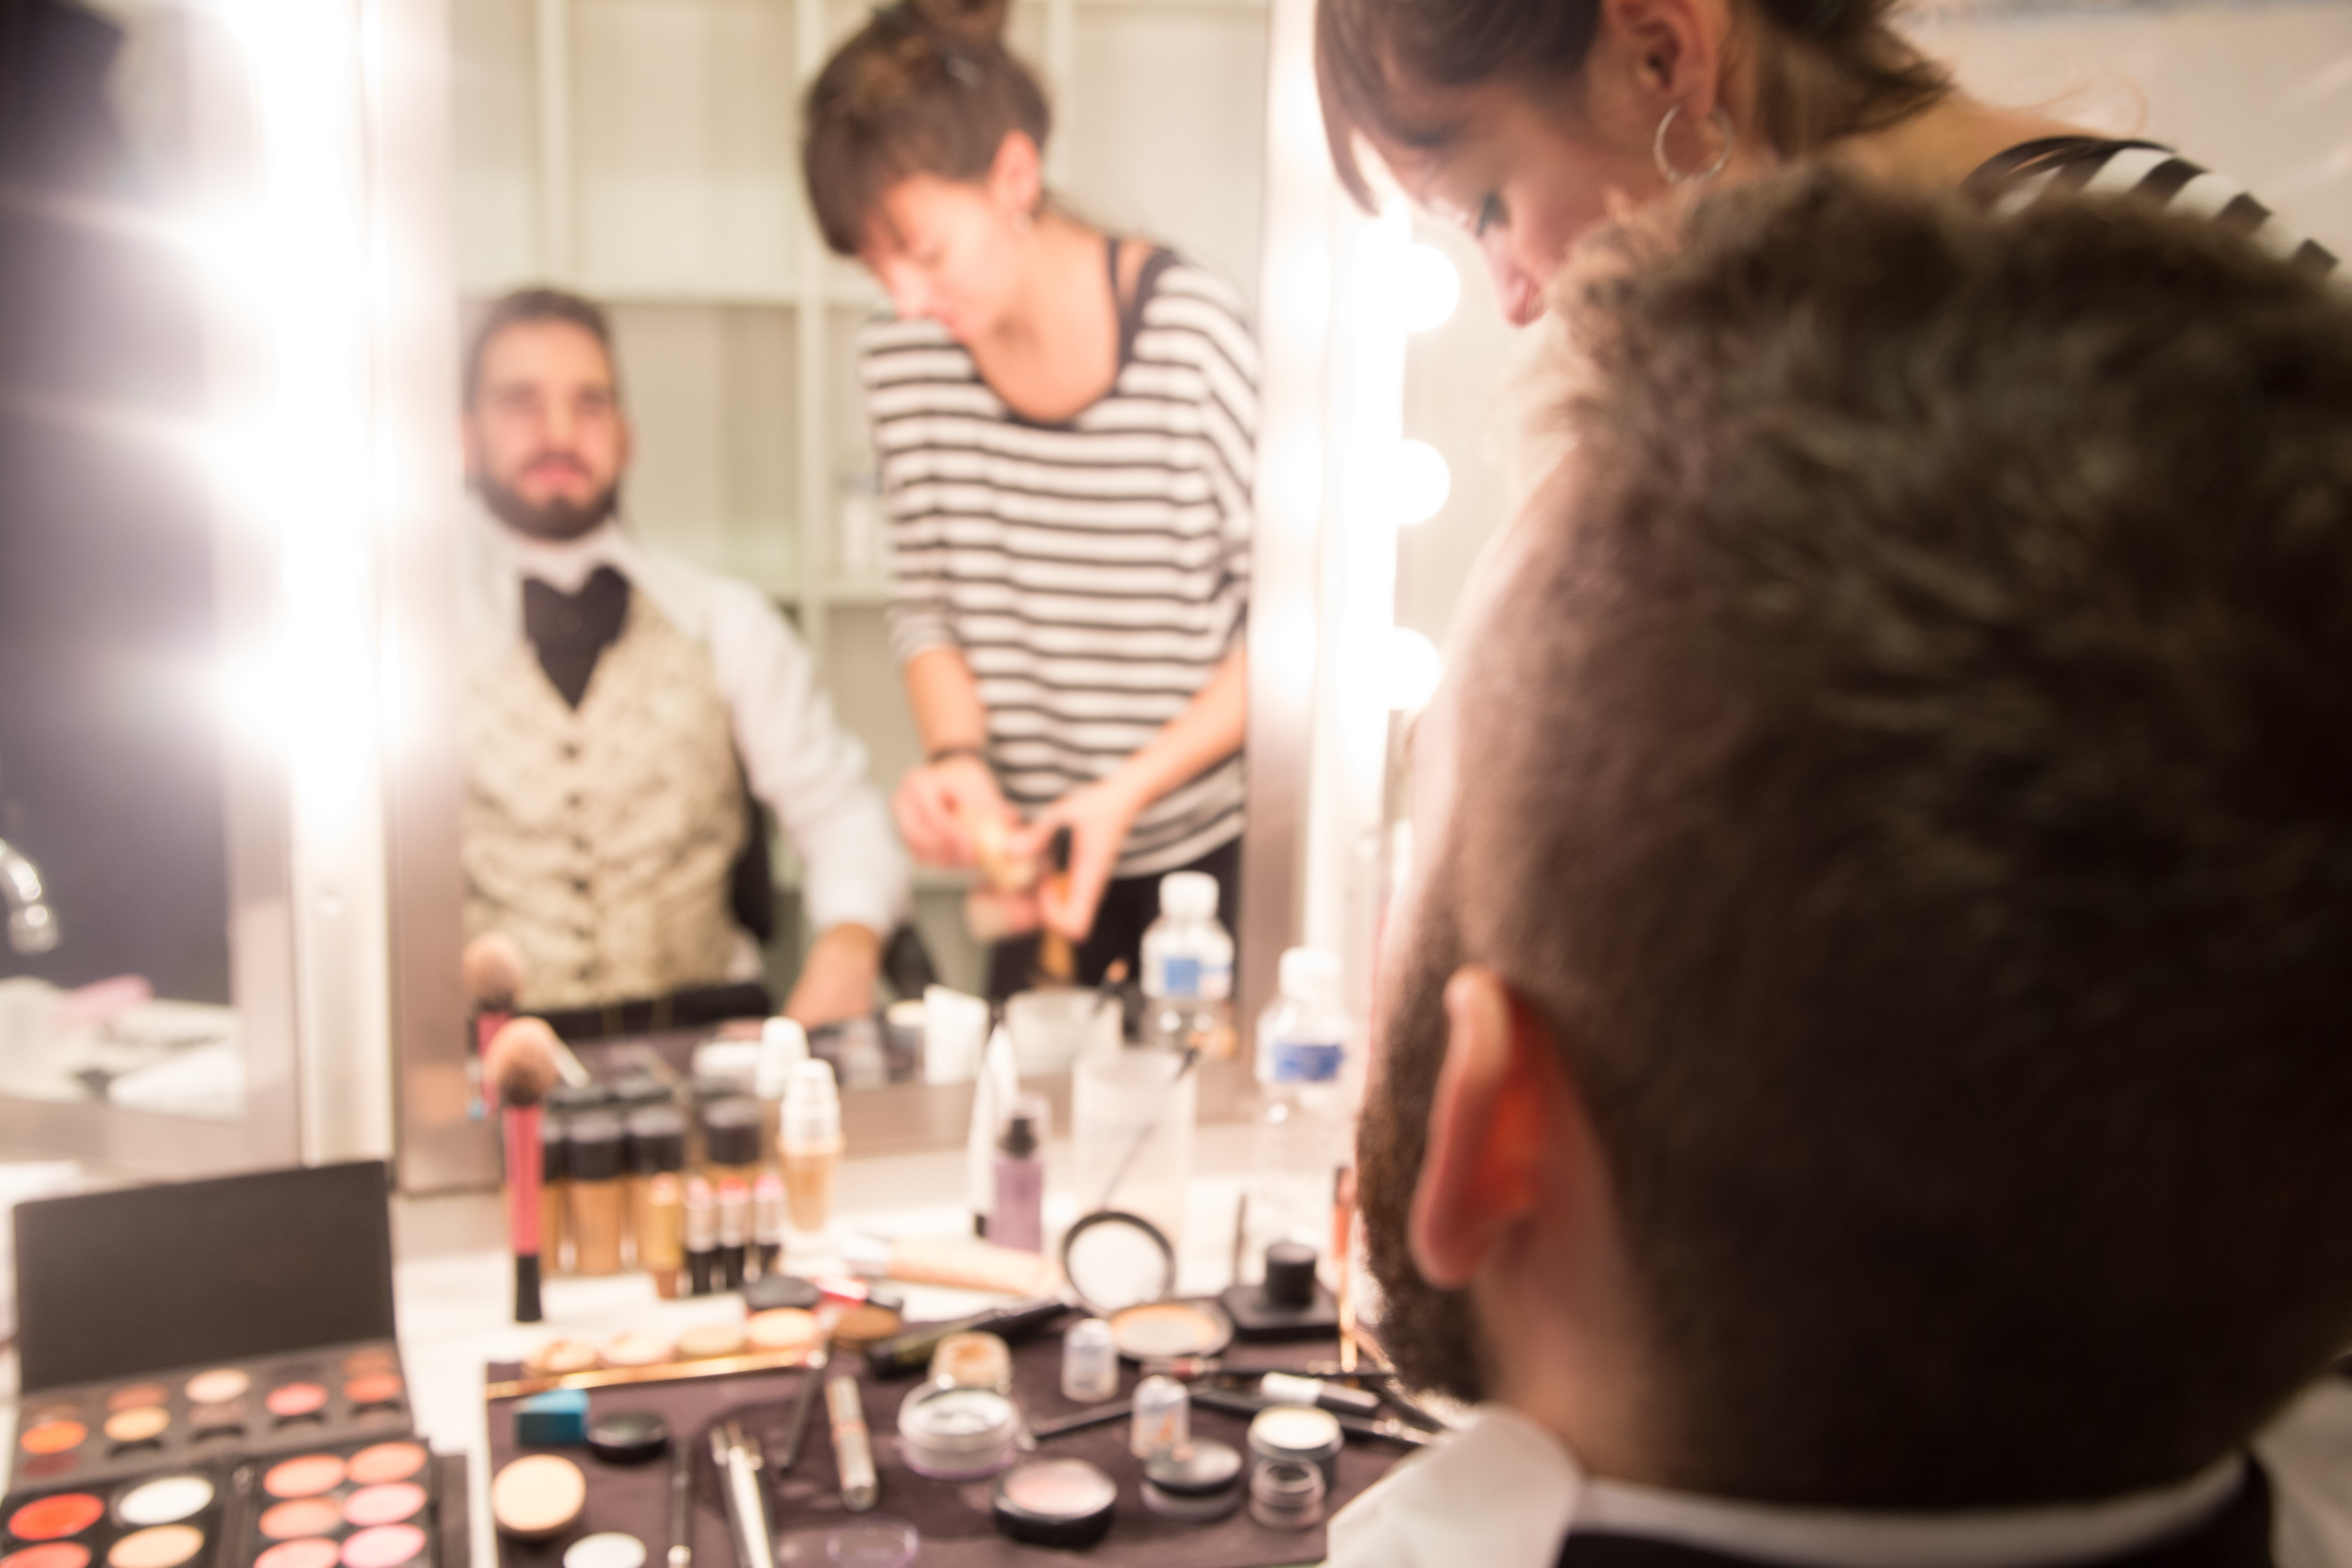 An actor getting ready with makeup